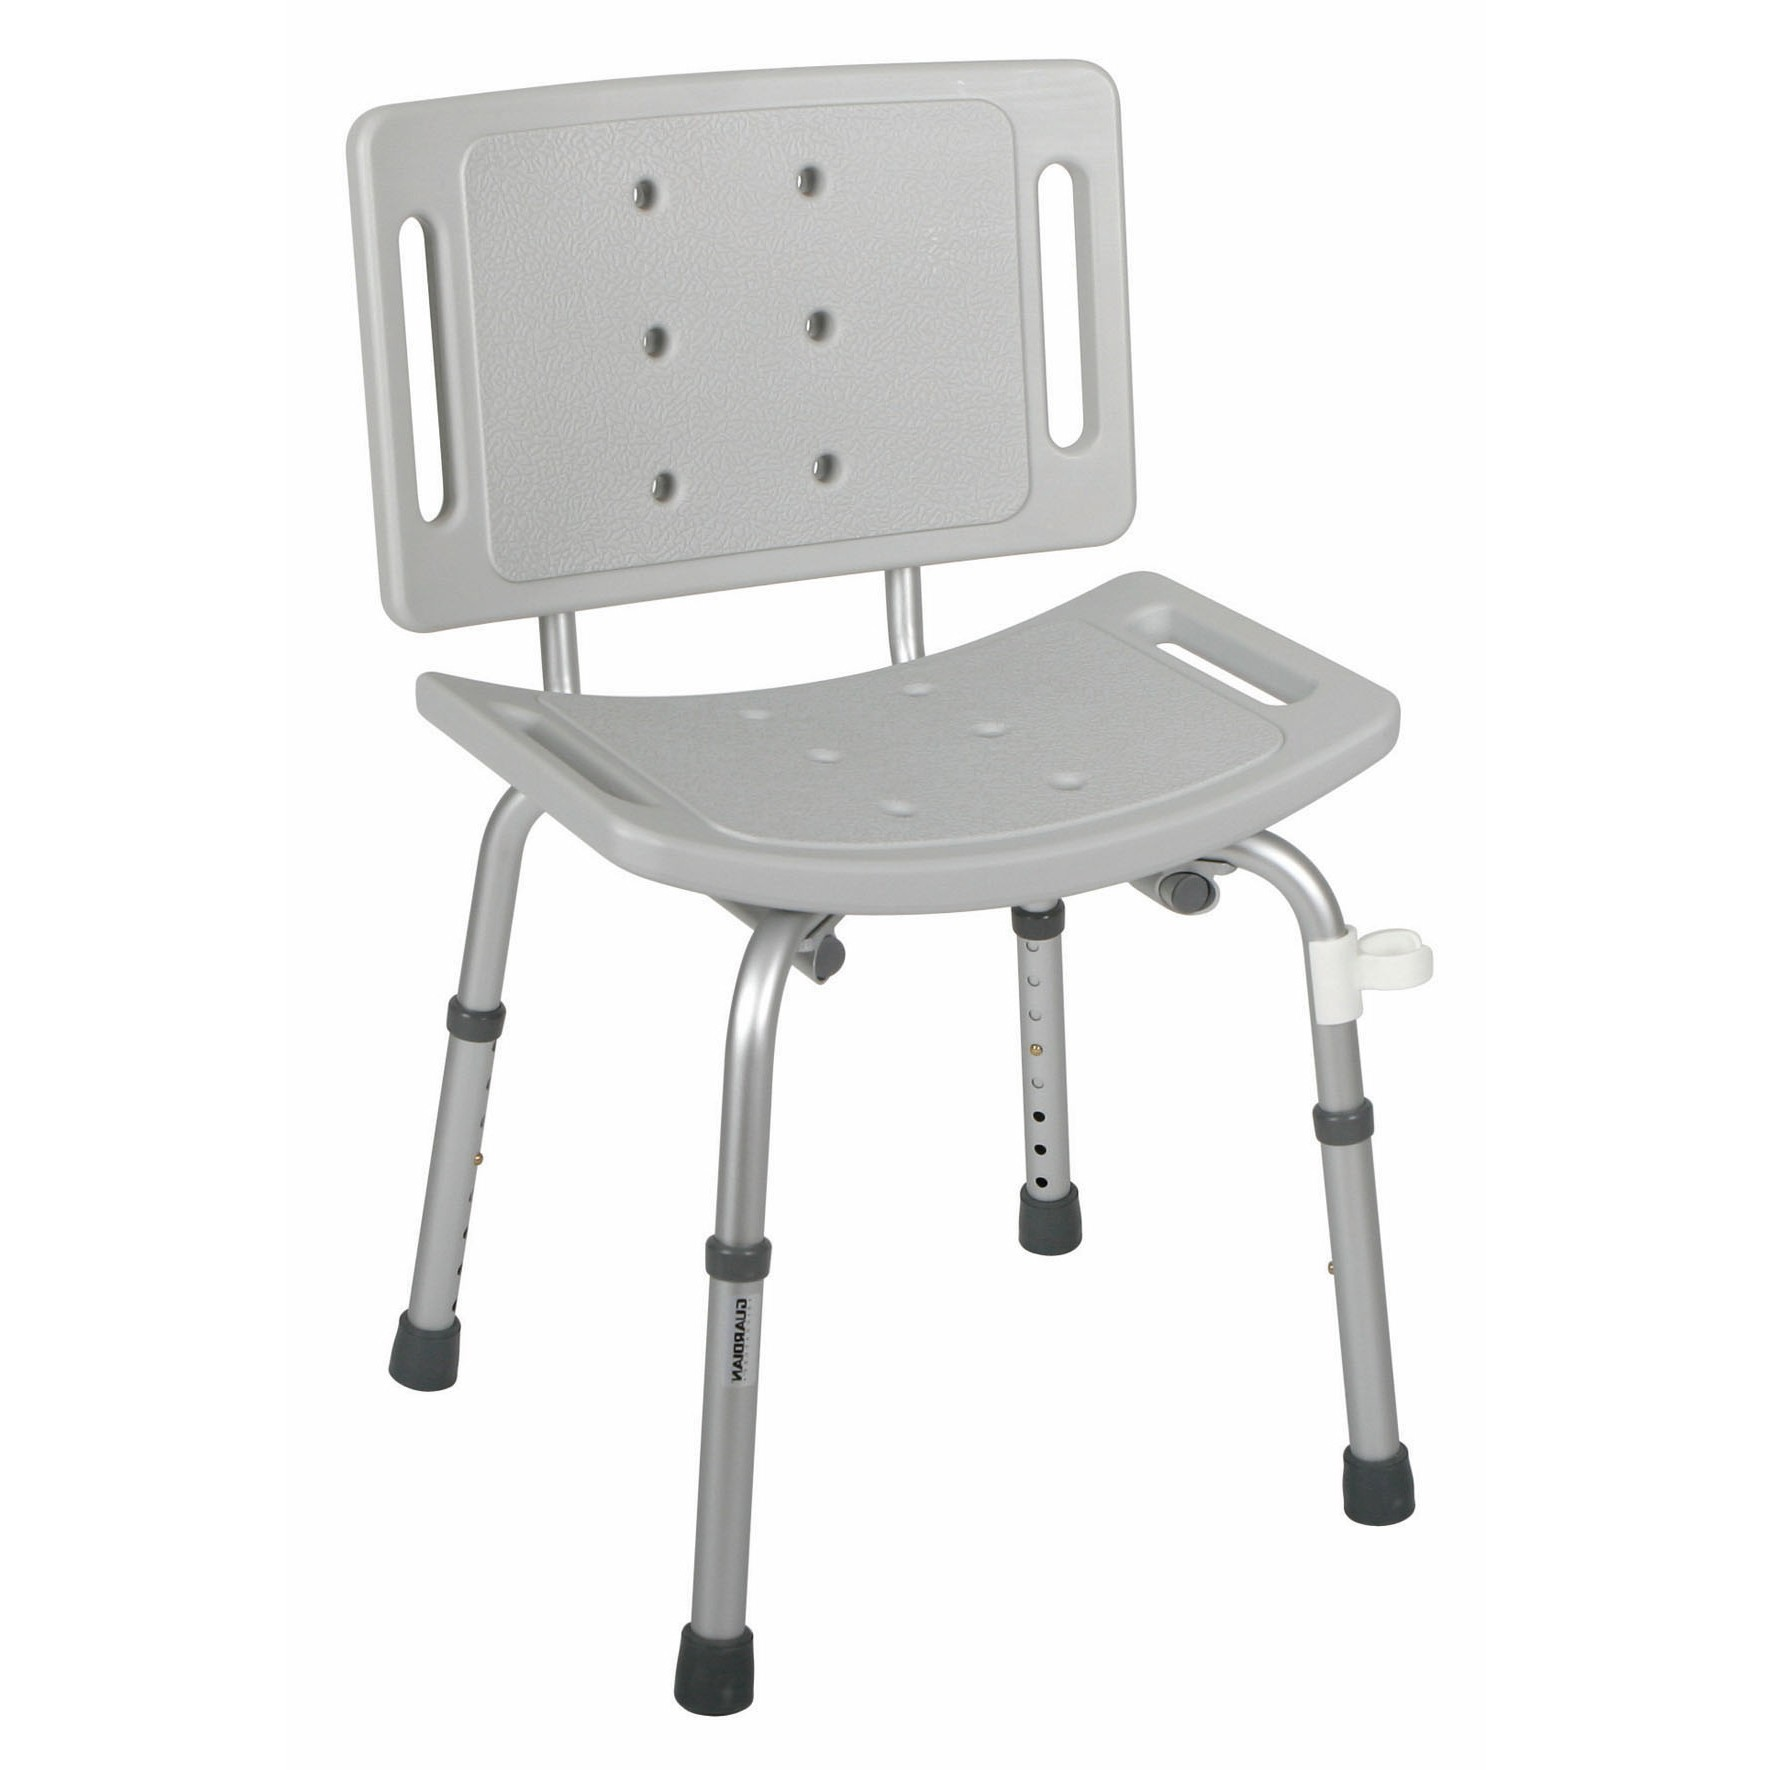 walgreens shower chair